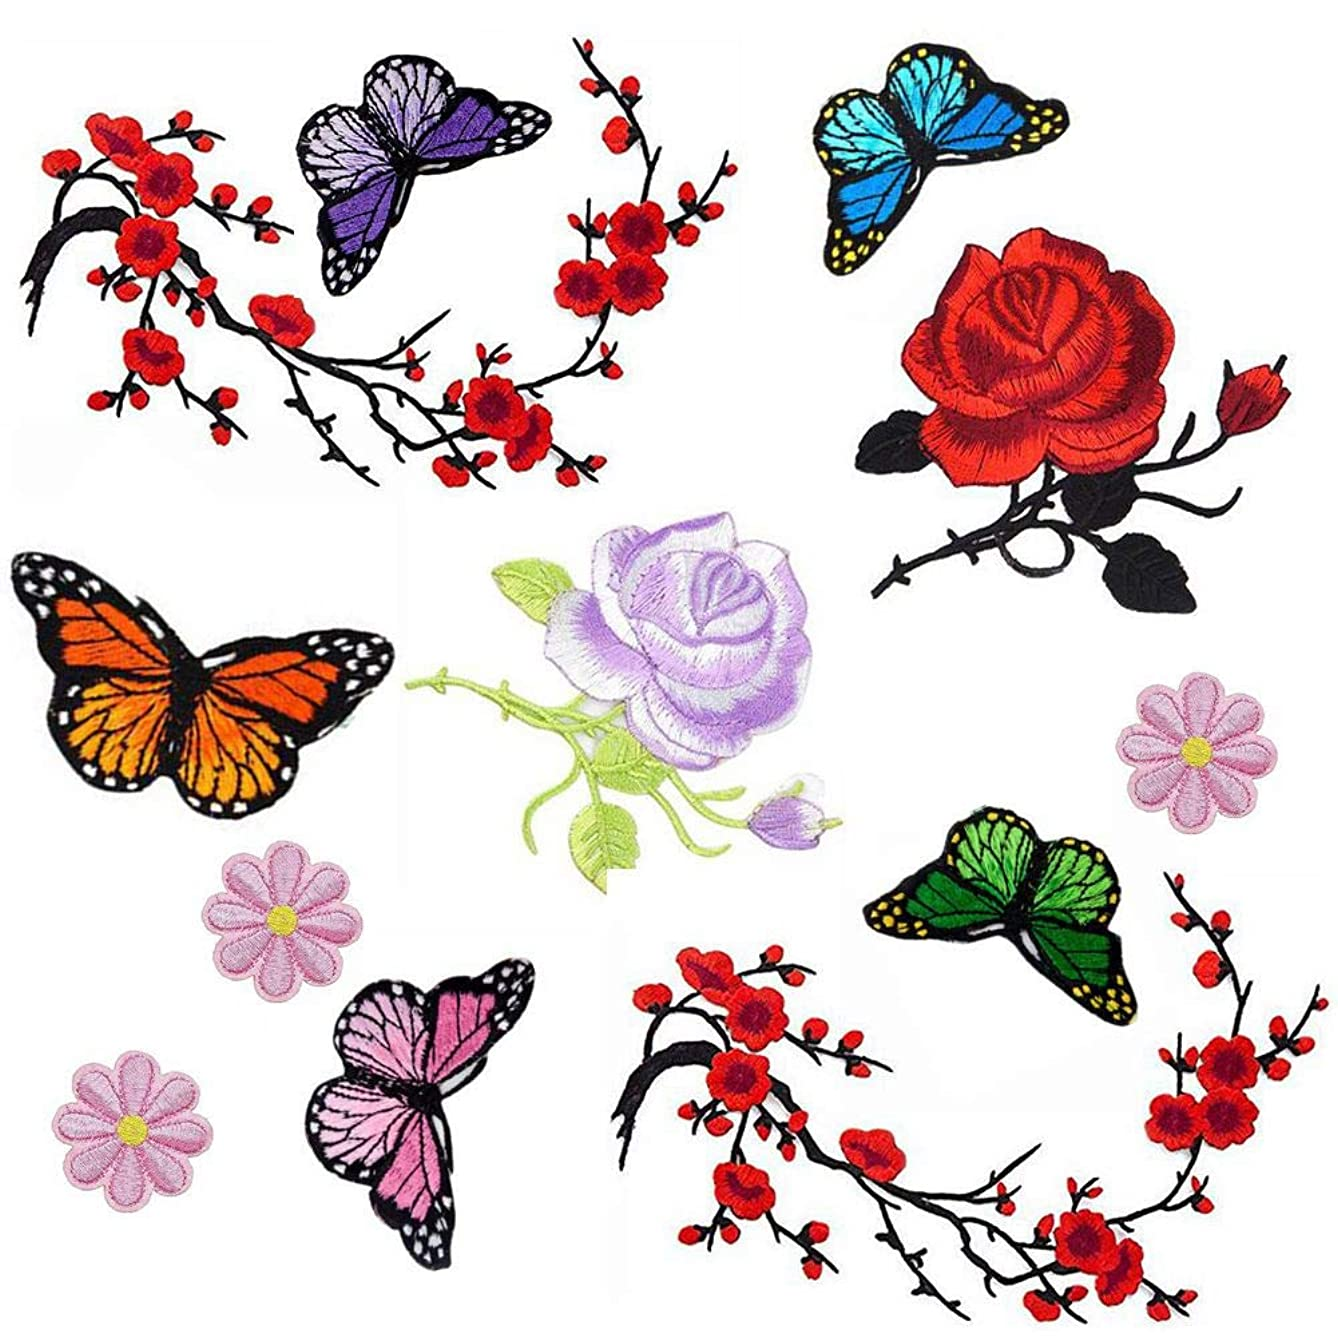 Budicool Plum Flower Butterfly Iron on Patches Embroidery Applique Patches for Arts Crafts DIY Decor, Jeans, Jackets, Clothing, Bags (Pack of 12pieces)